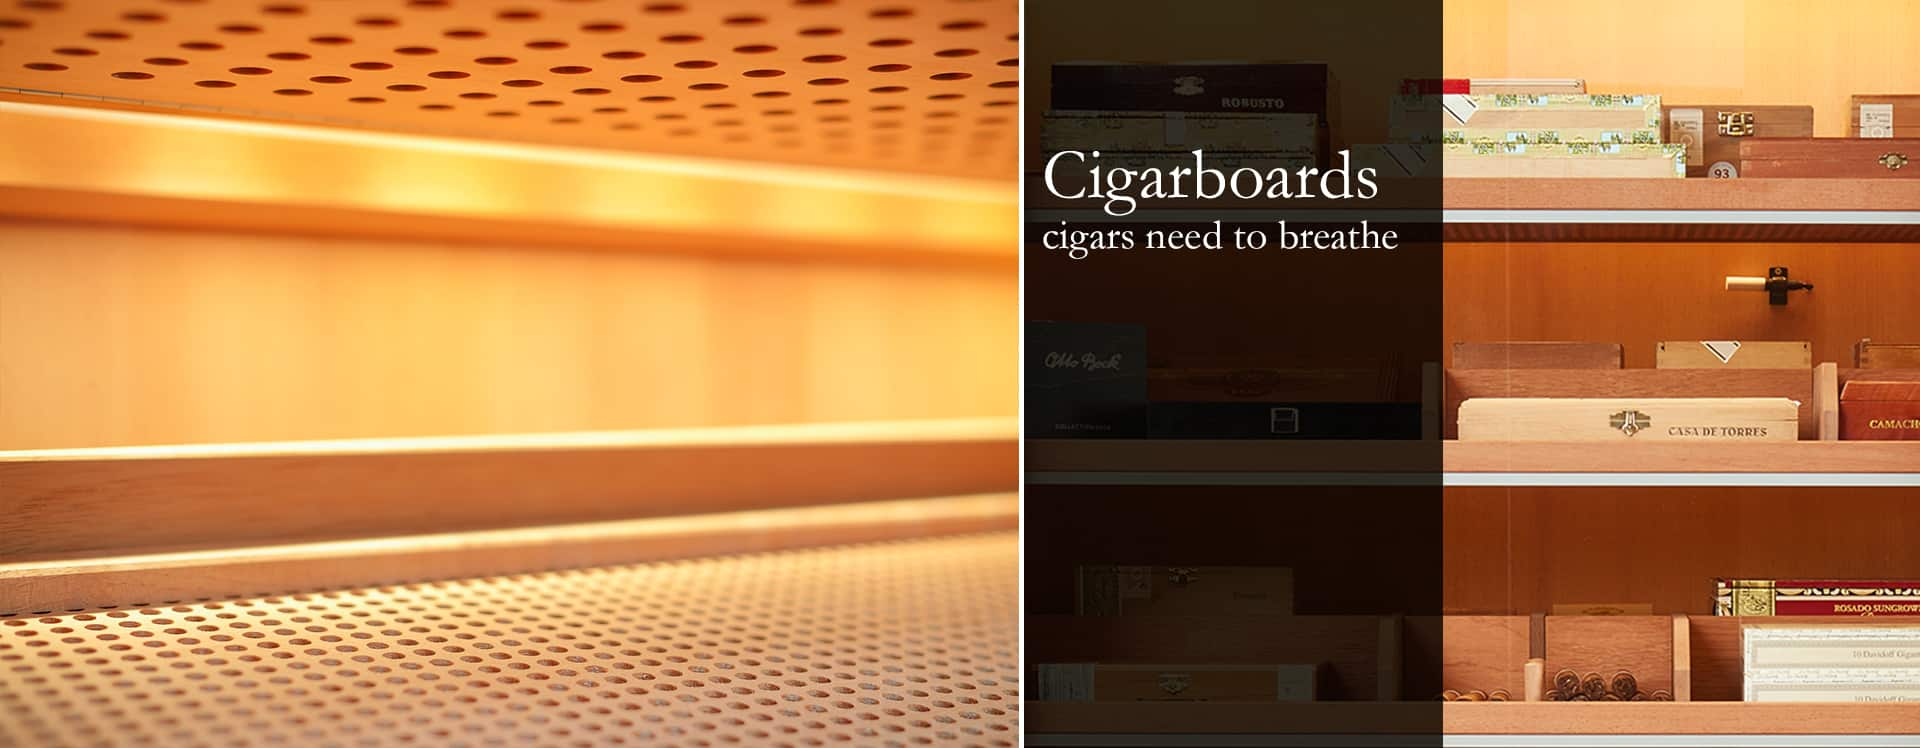 GERBER Humidors Cigarboards